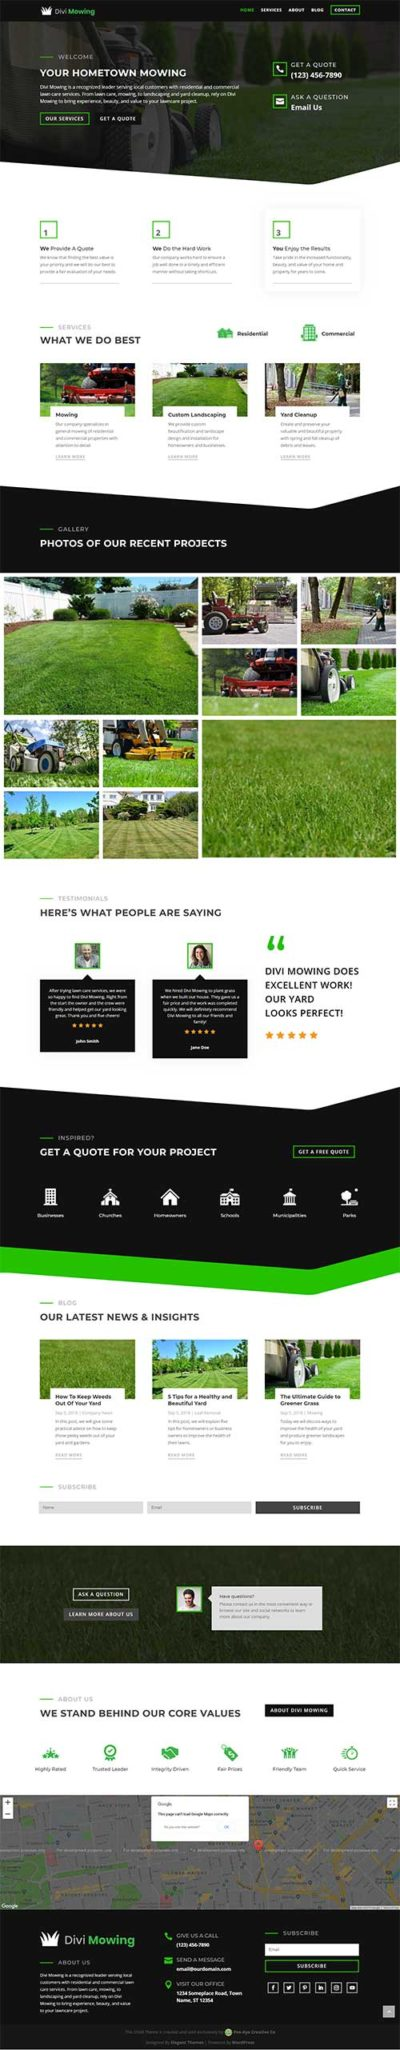 divi lawnmowing layout pack